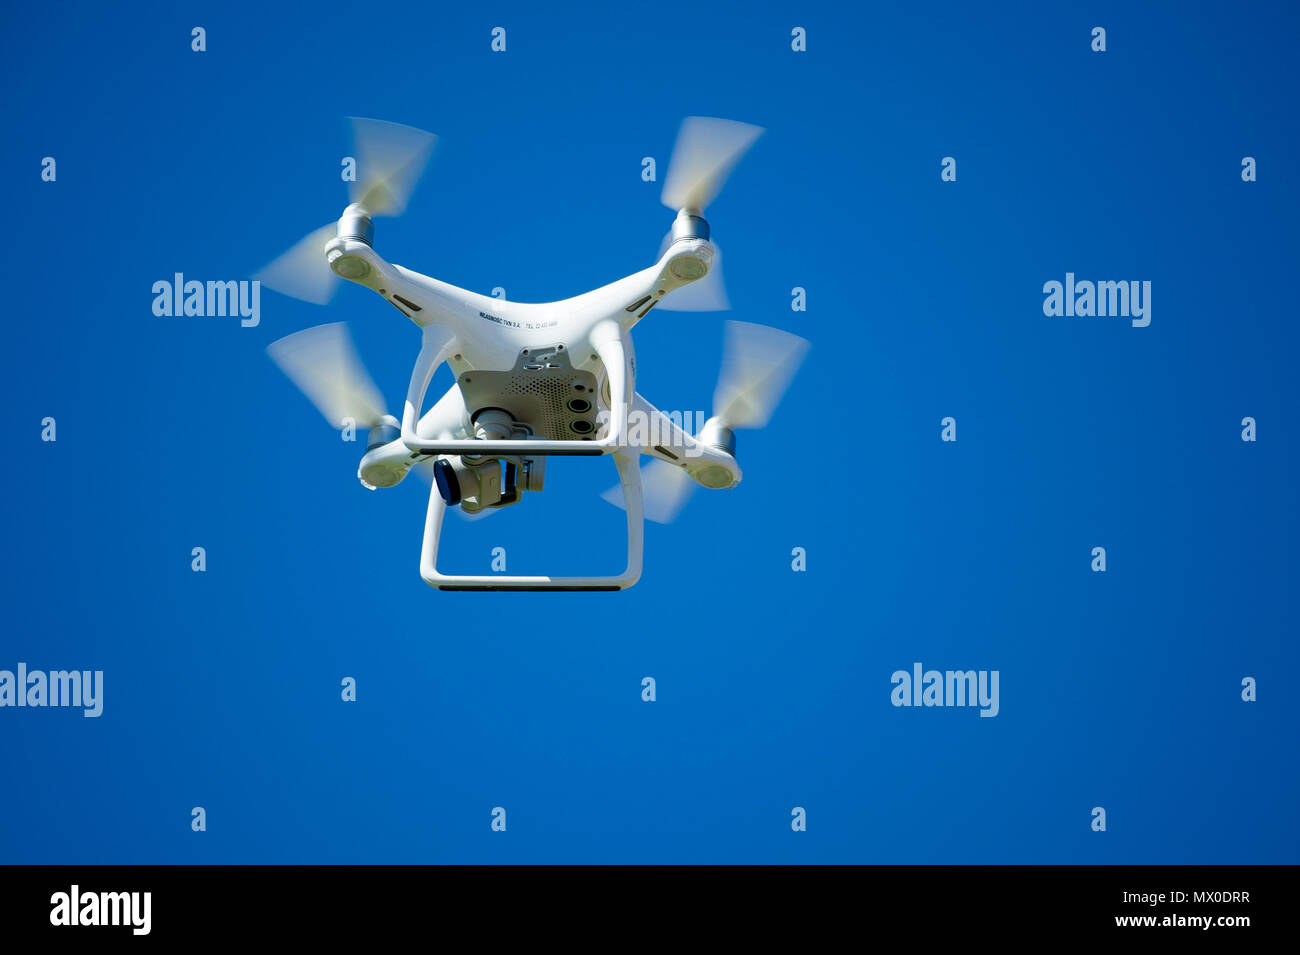 Unmanned aerial vehicle. May 23rd 2018 © Wojciech Strozyk / Alamy Stock Photo - Stock Image